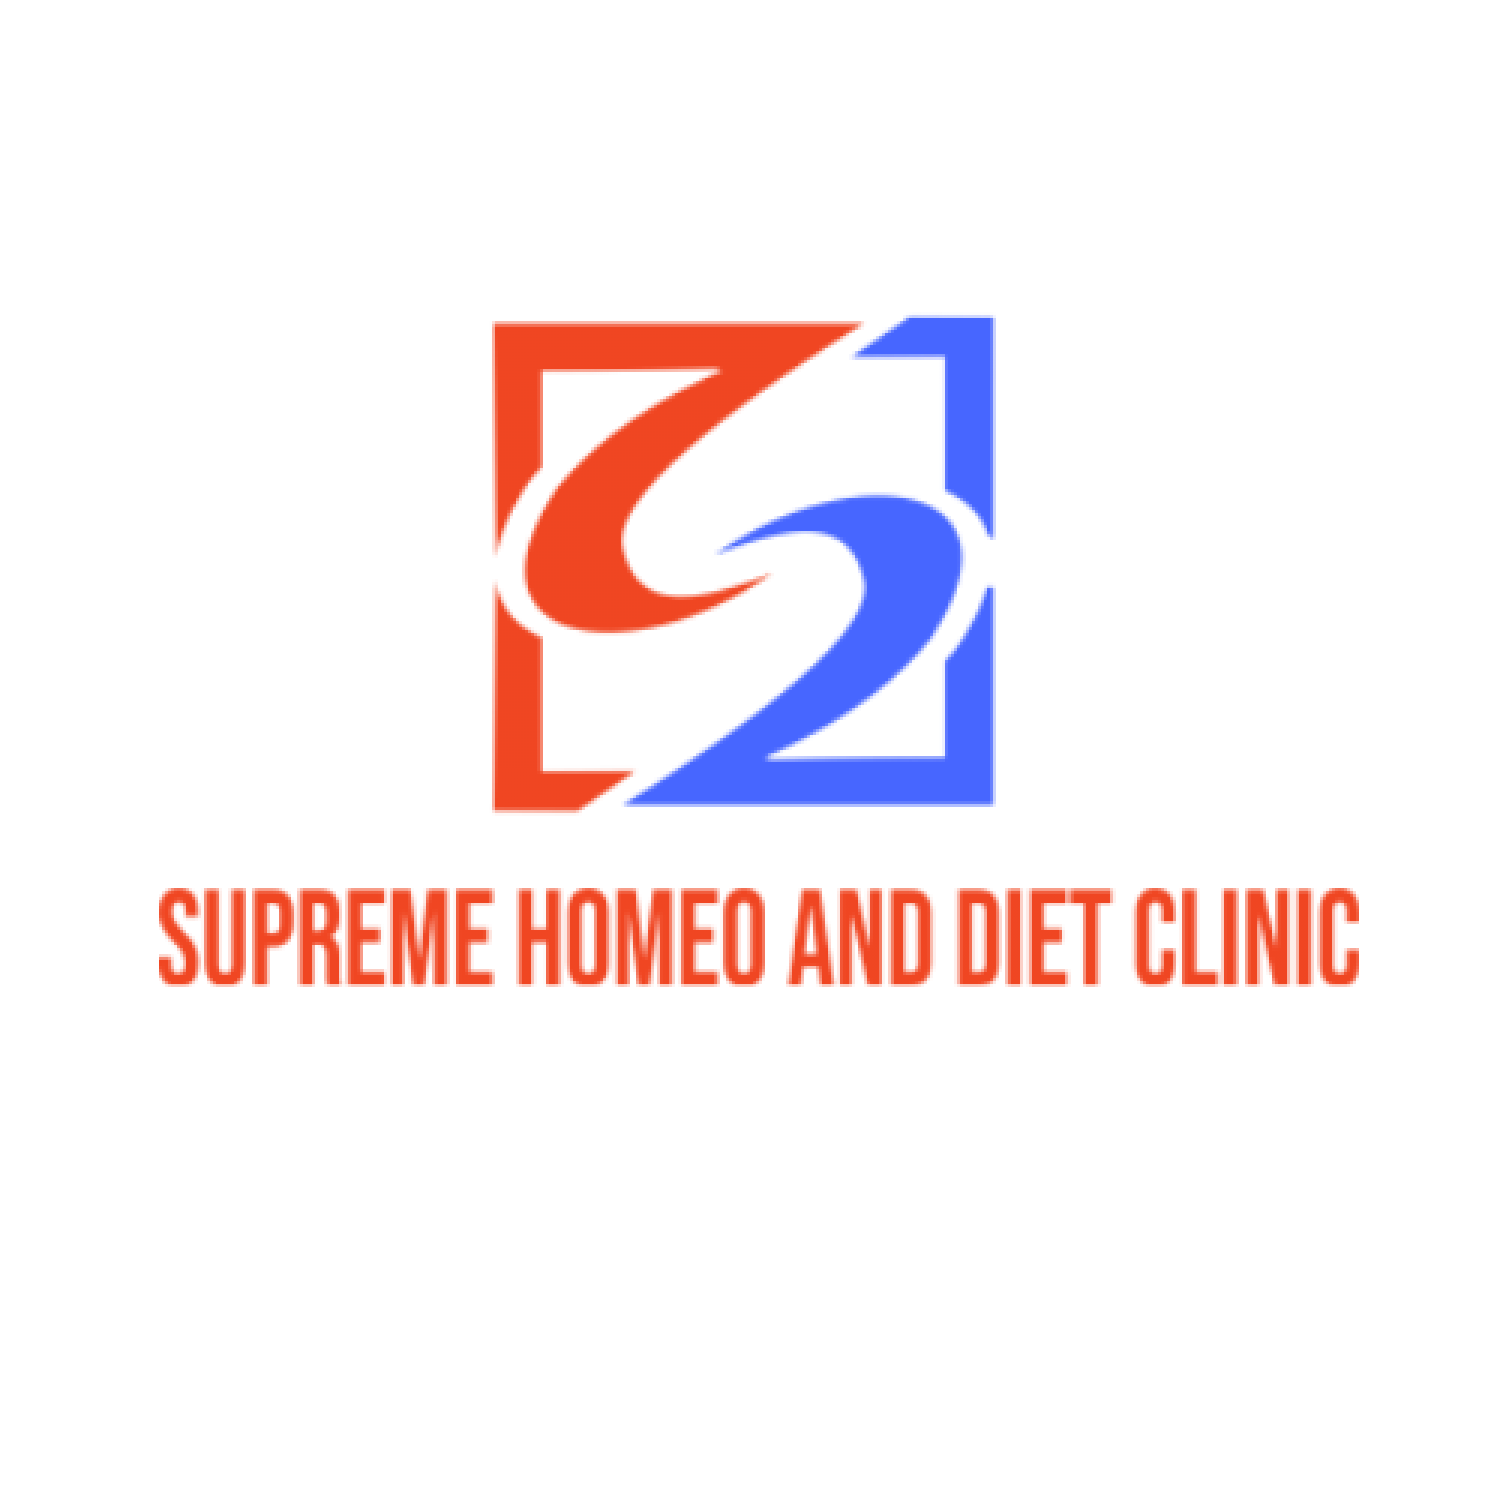 Supreme Homeo and Diet Clinic Pune Infographic